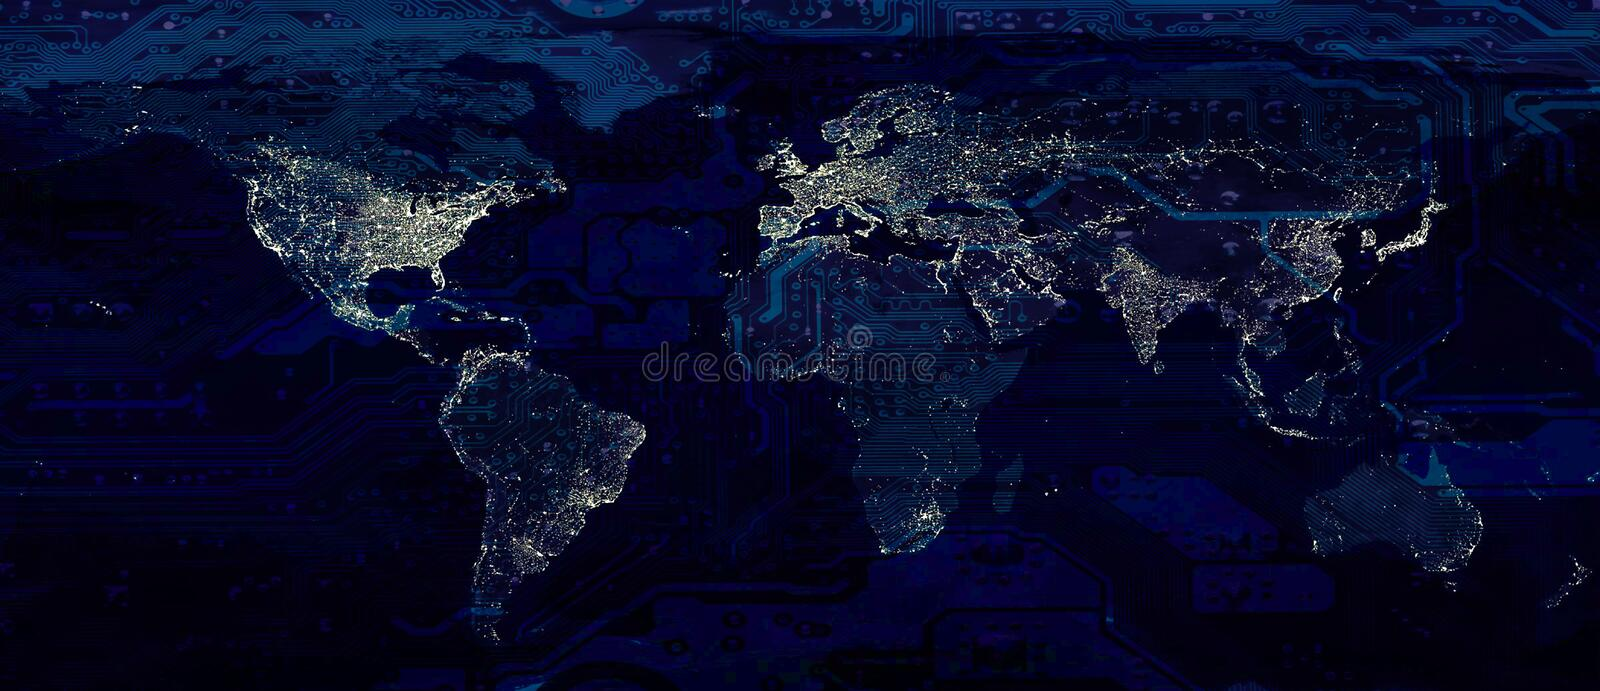 World map city lights and dark motherboard royalty free stock images